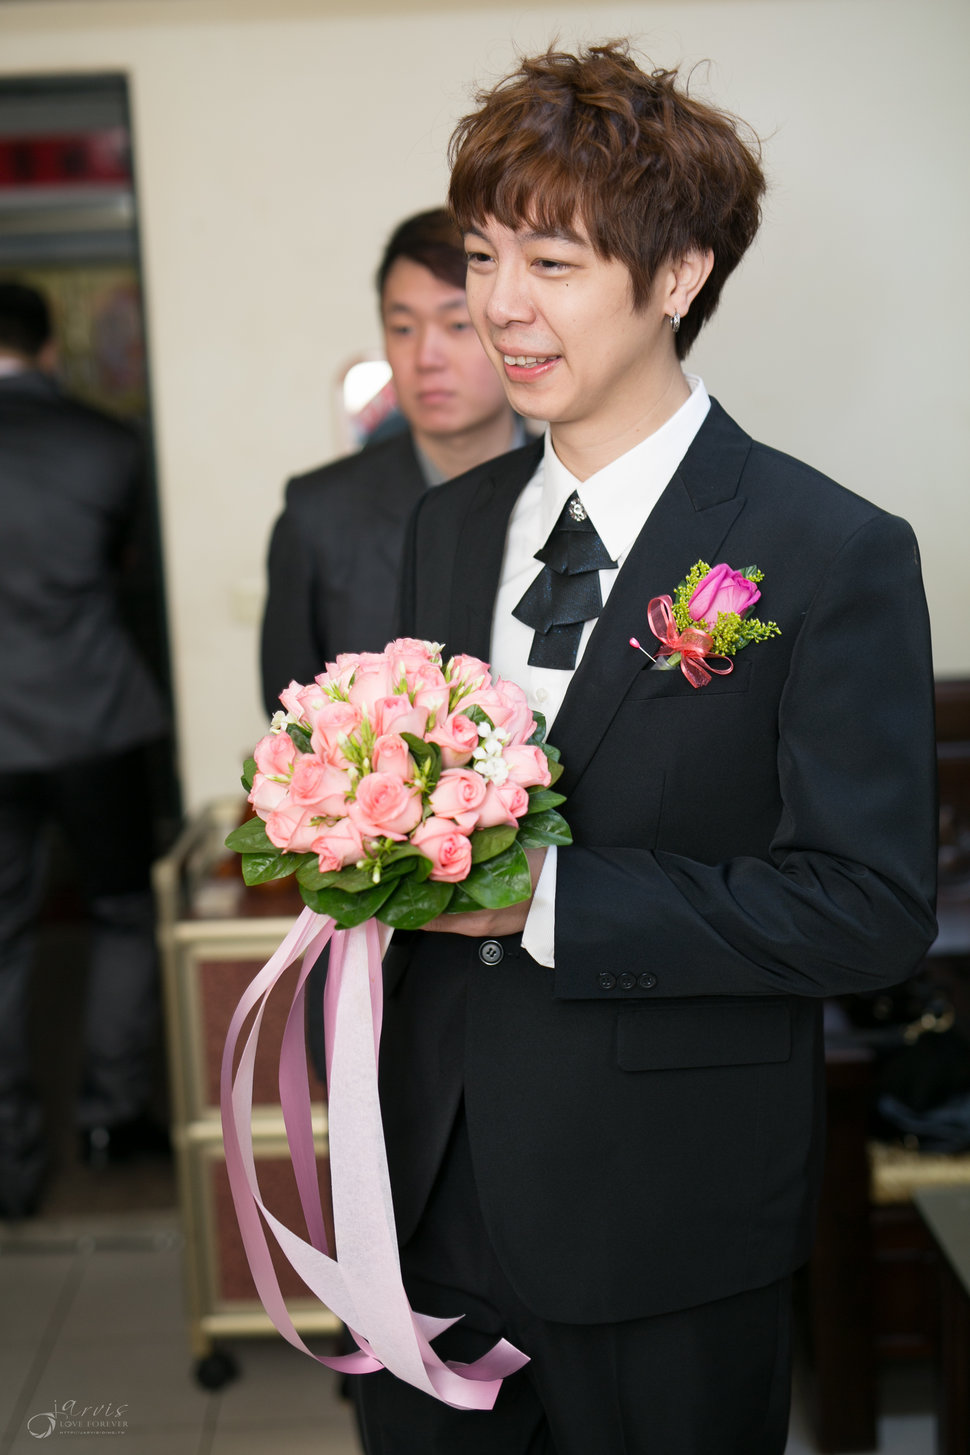 2D7A5160 - Jarvis Ding - 結婚吧